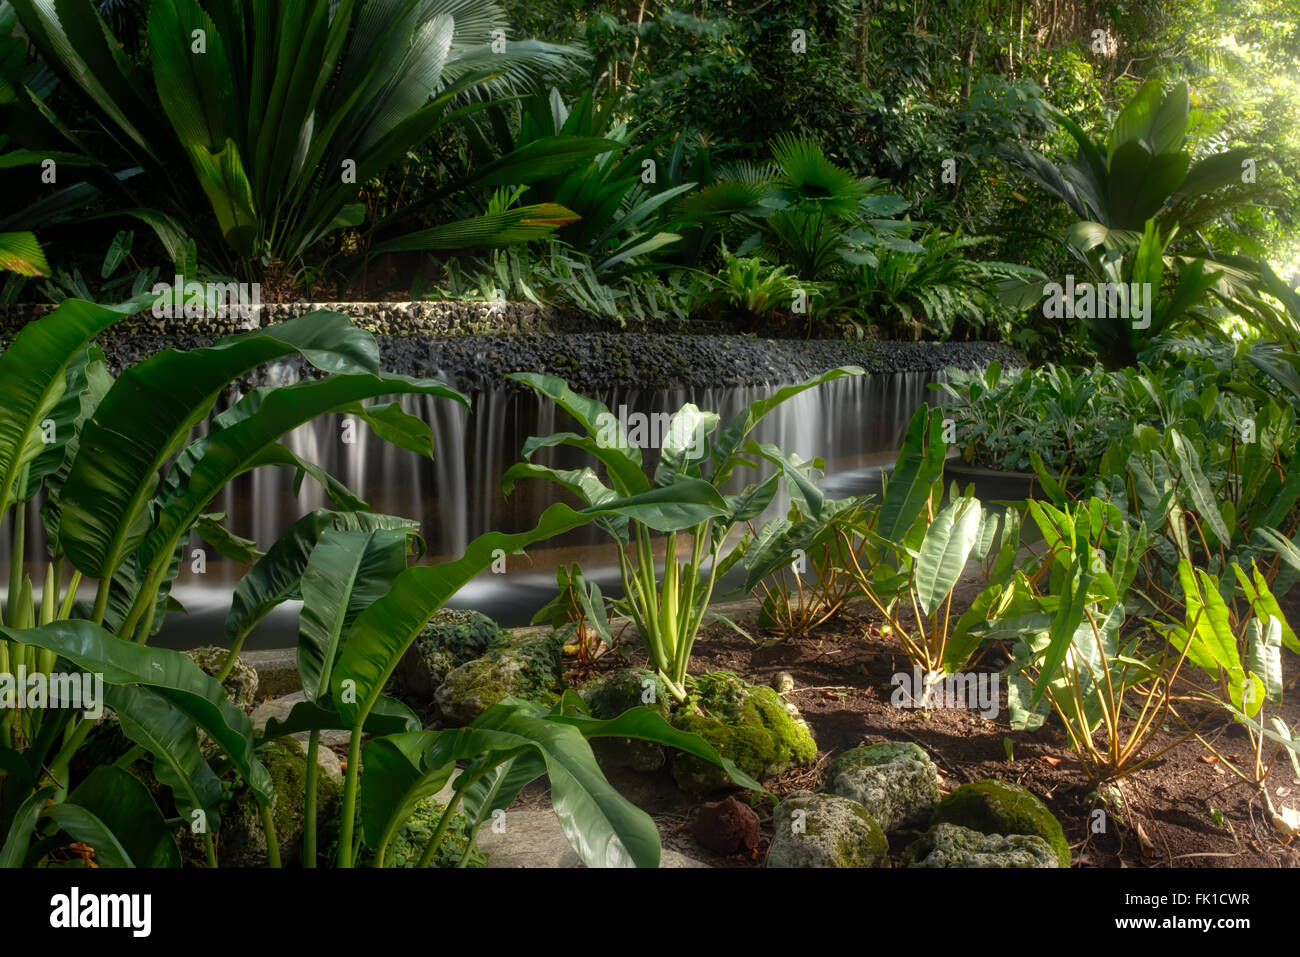 Waterfall, Botanic Gardens, SIngapore - Stock Image